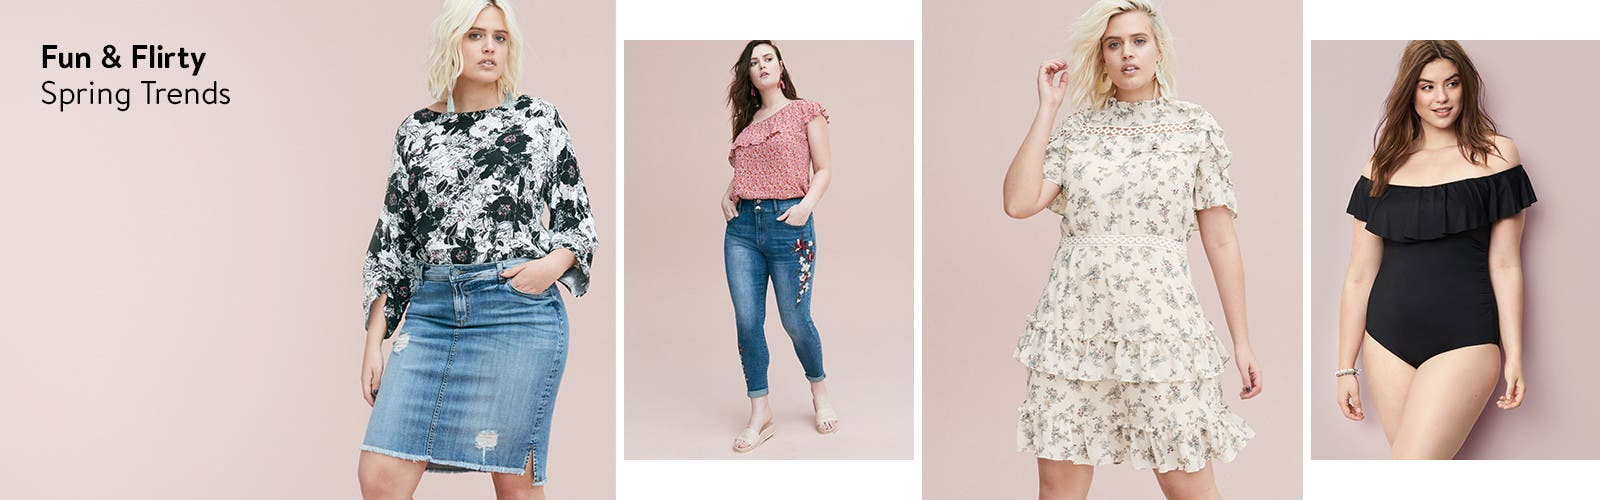 Fun and flirty plus-size spring trends.